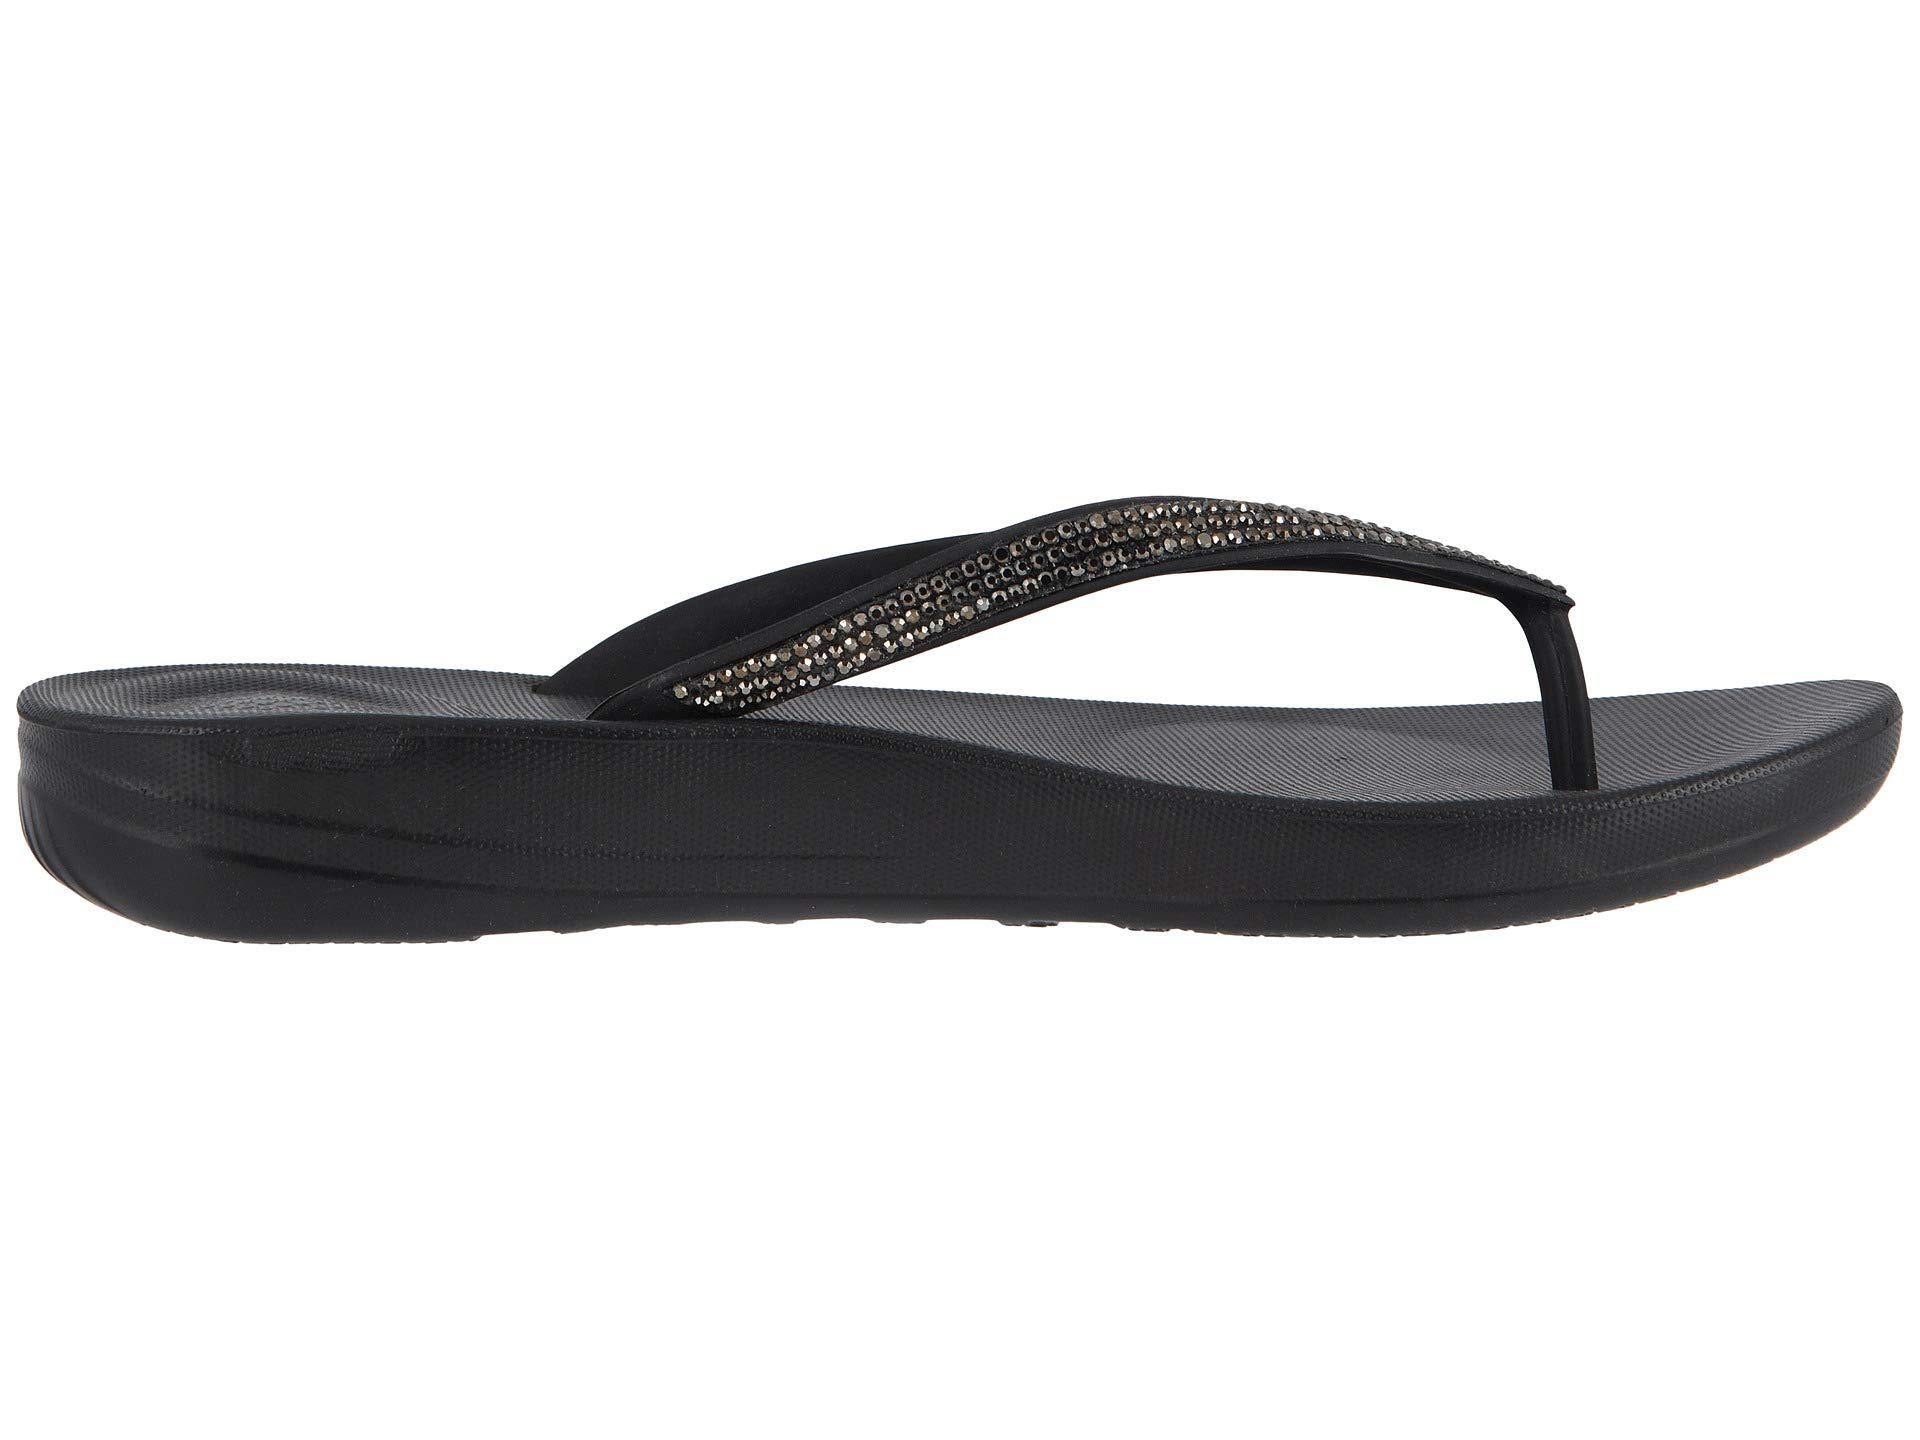 bc9e99dcfbdd Lyst - Fitflop Iqushion Sparkle (black) Women s Shoes in Black